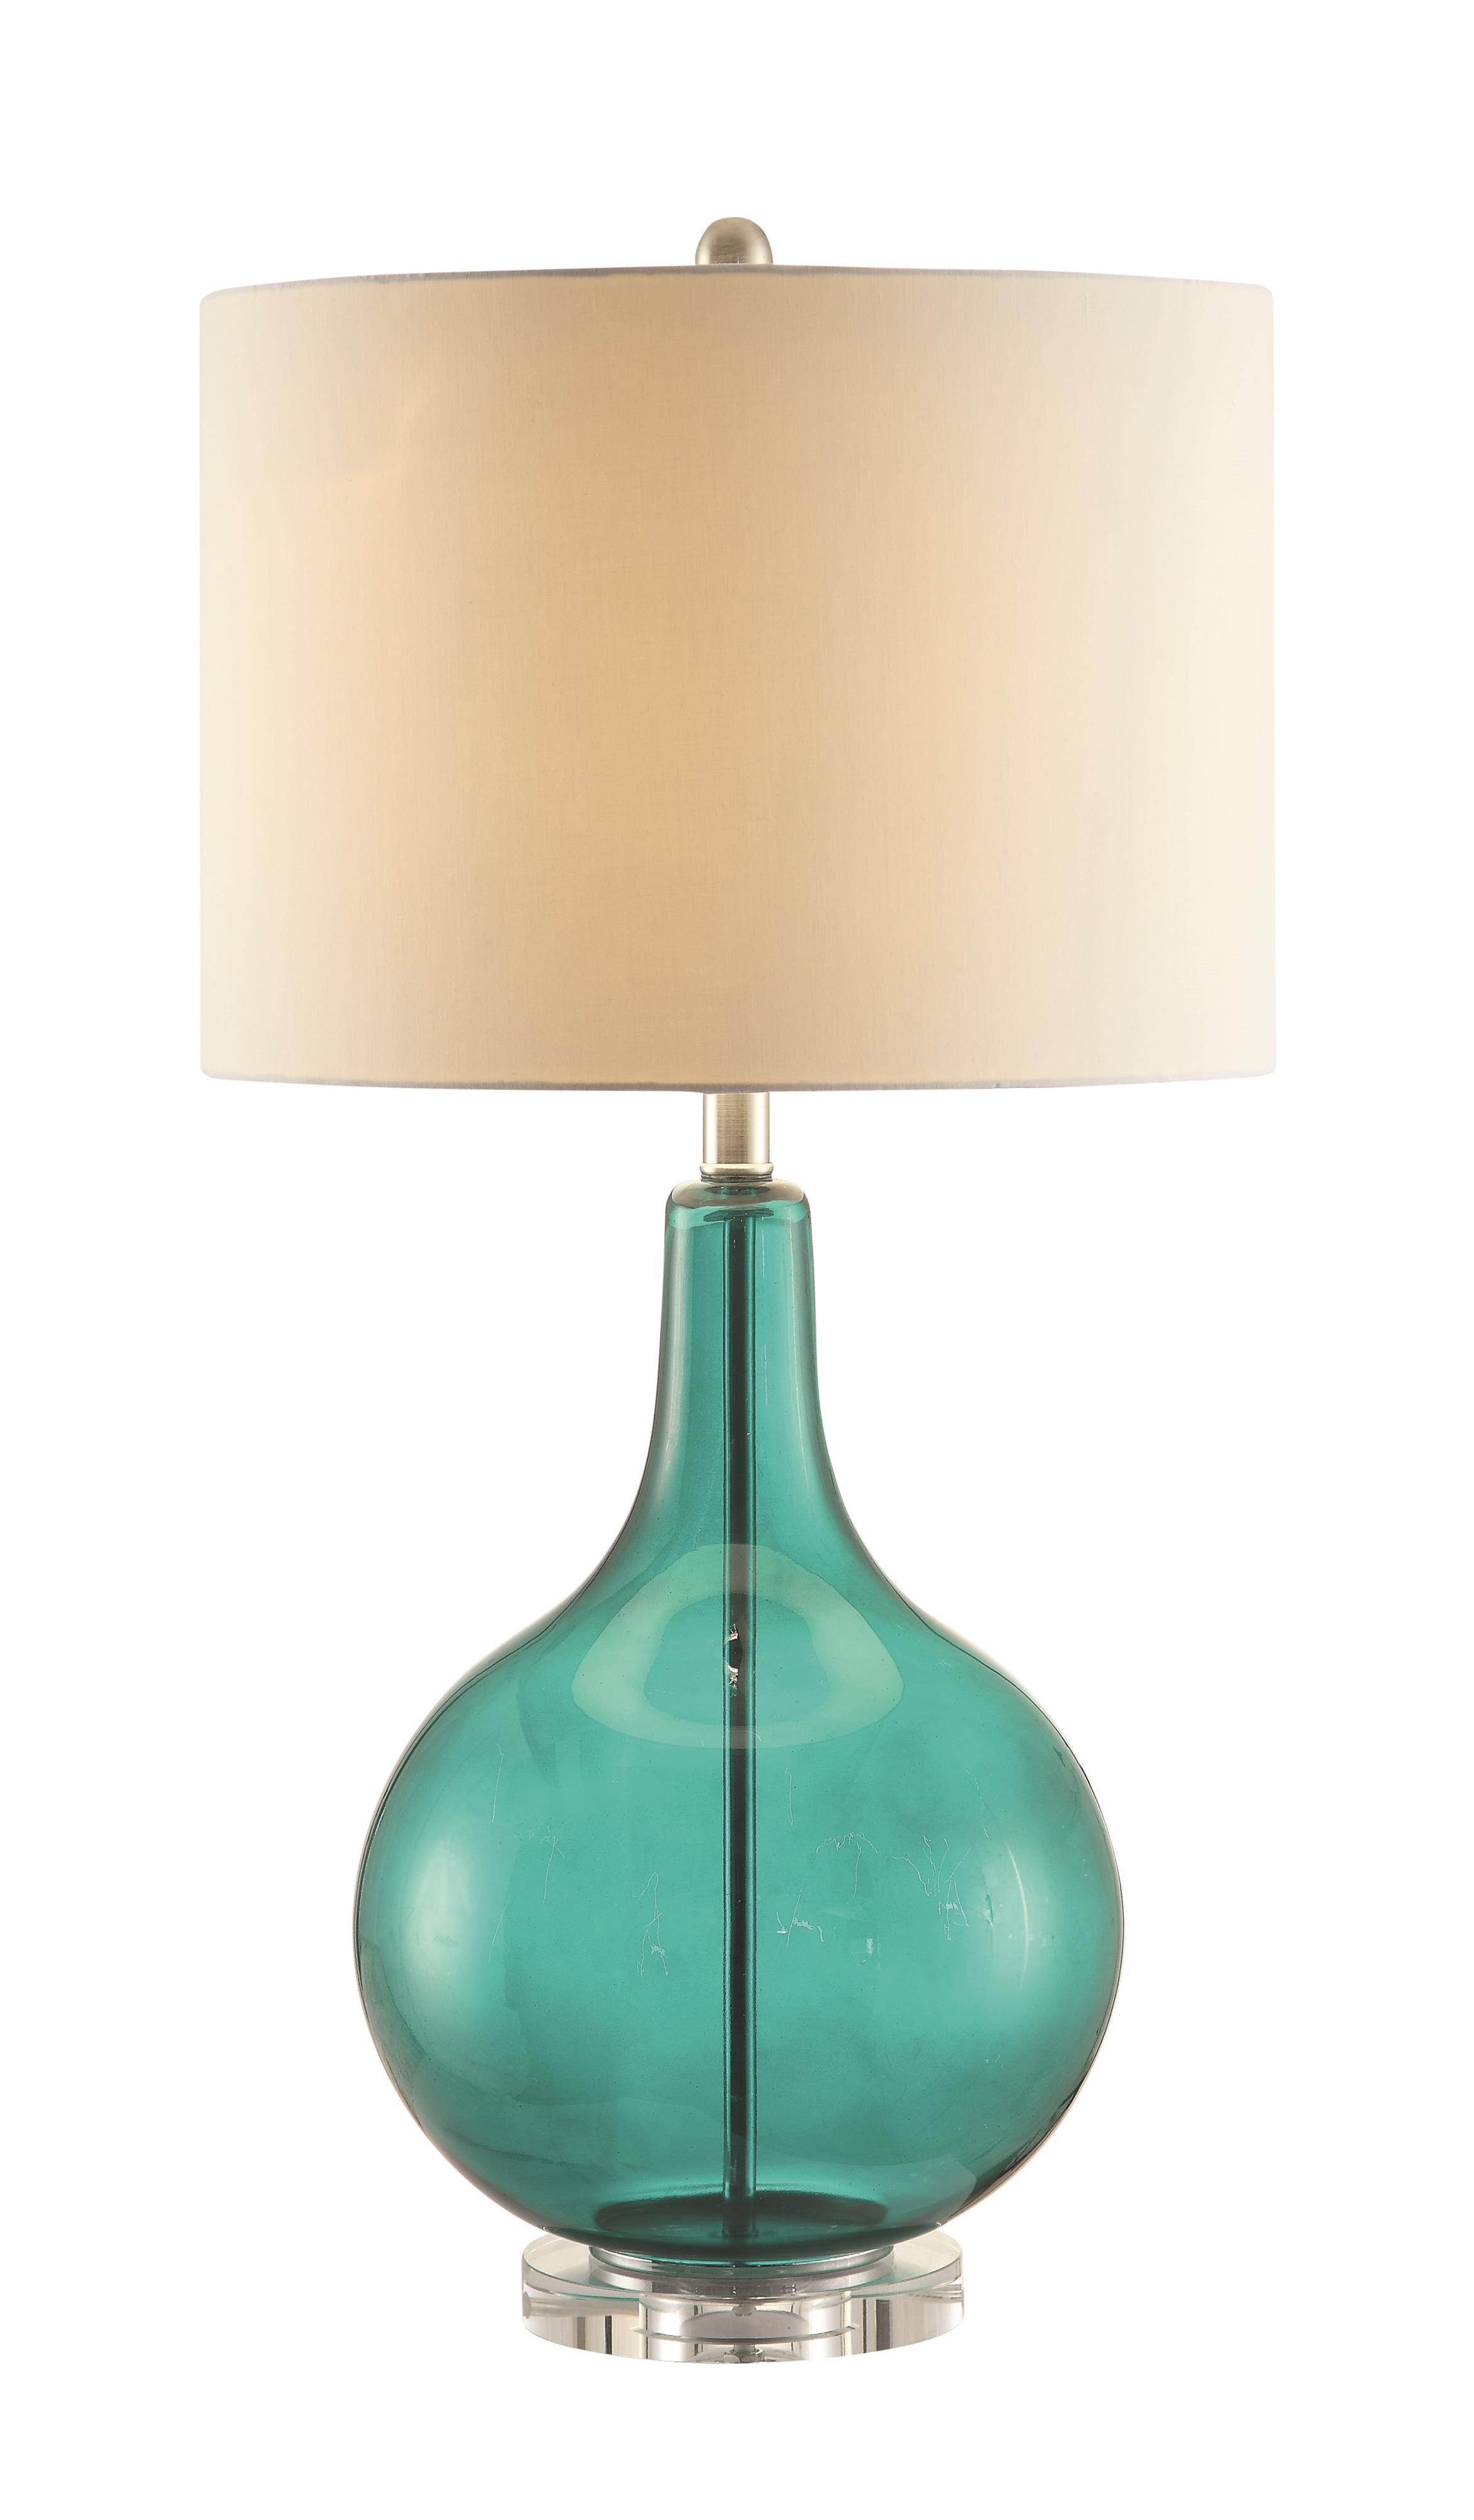 Coaster Table Lamps Table Lamp - Item Number: 901554